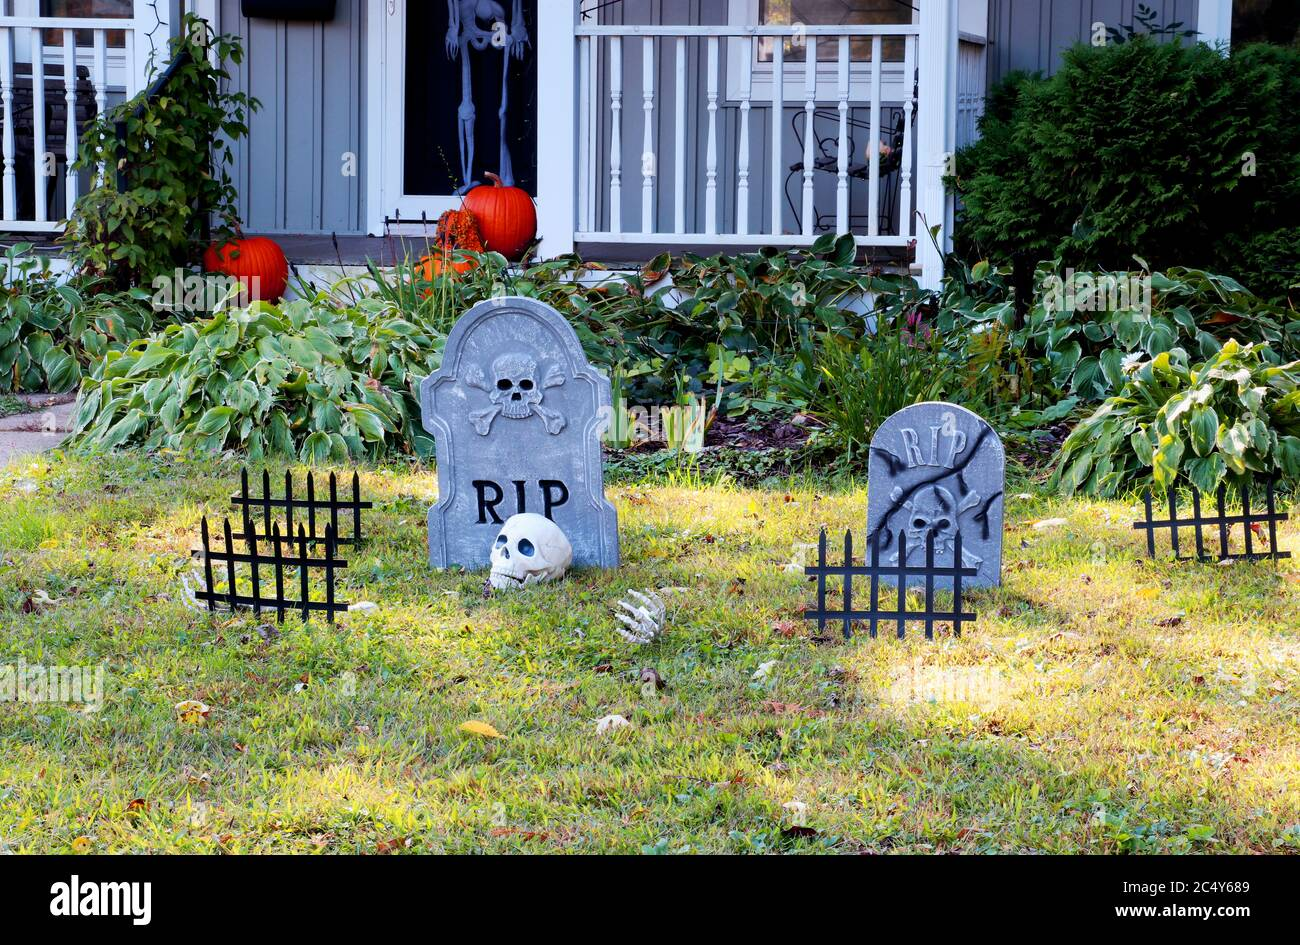 Front Yard Of Private House Decorated By Fake Skull Bones Hands Tombstones And Grates Pumpkins On The Porch For A Old American Trick Or Treat Hallo Stock Photo Alamy